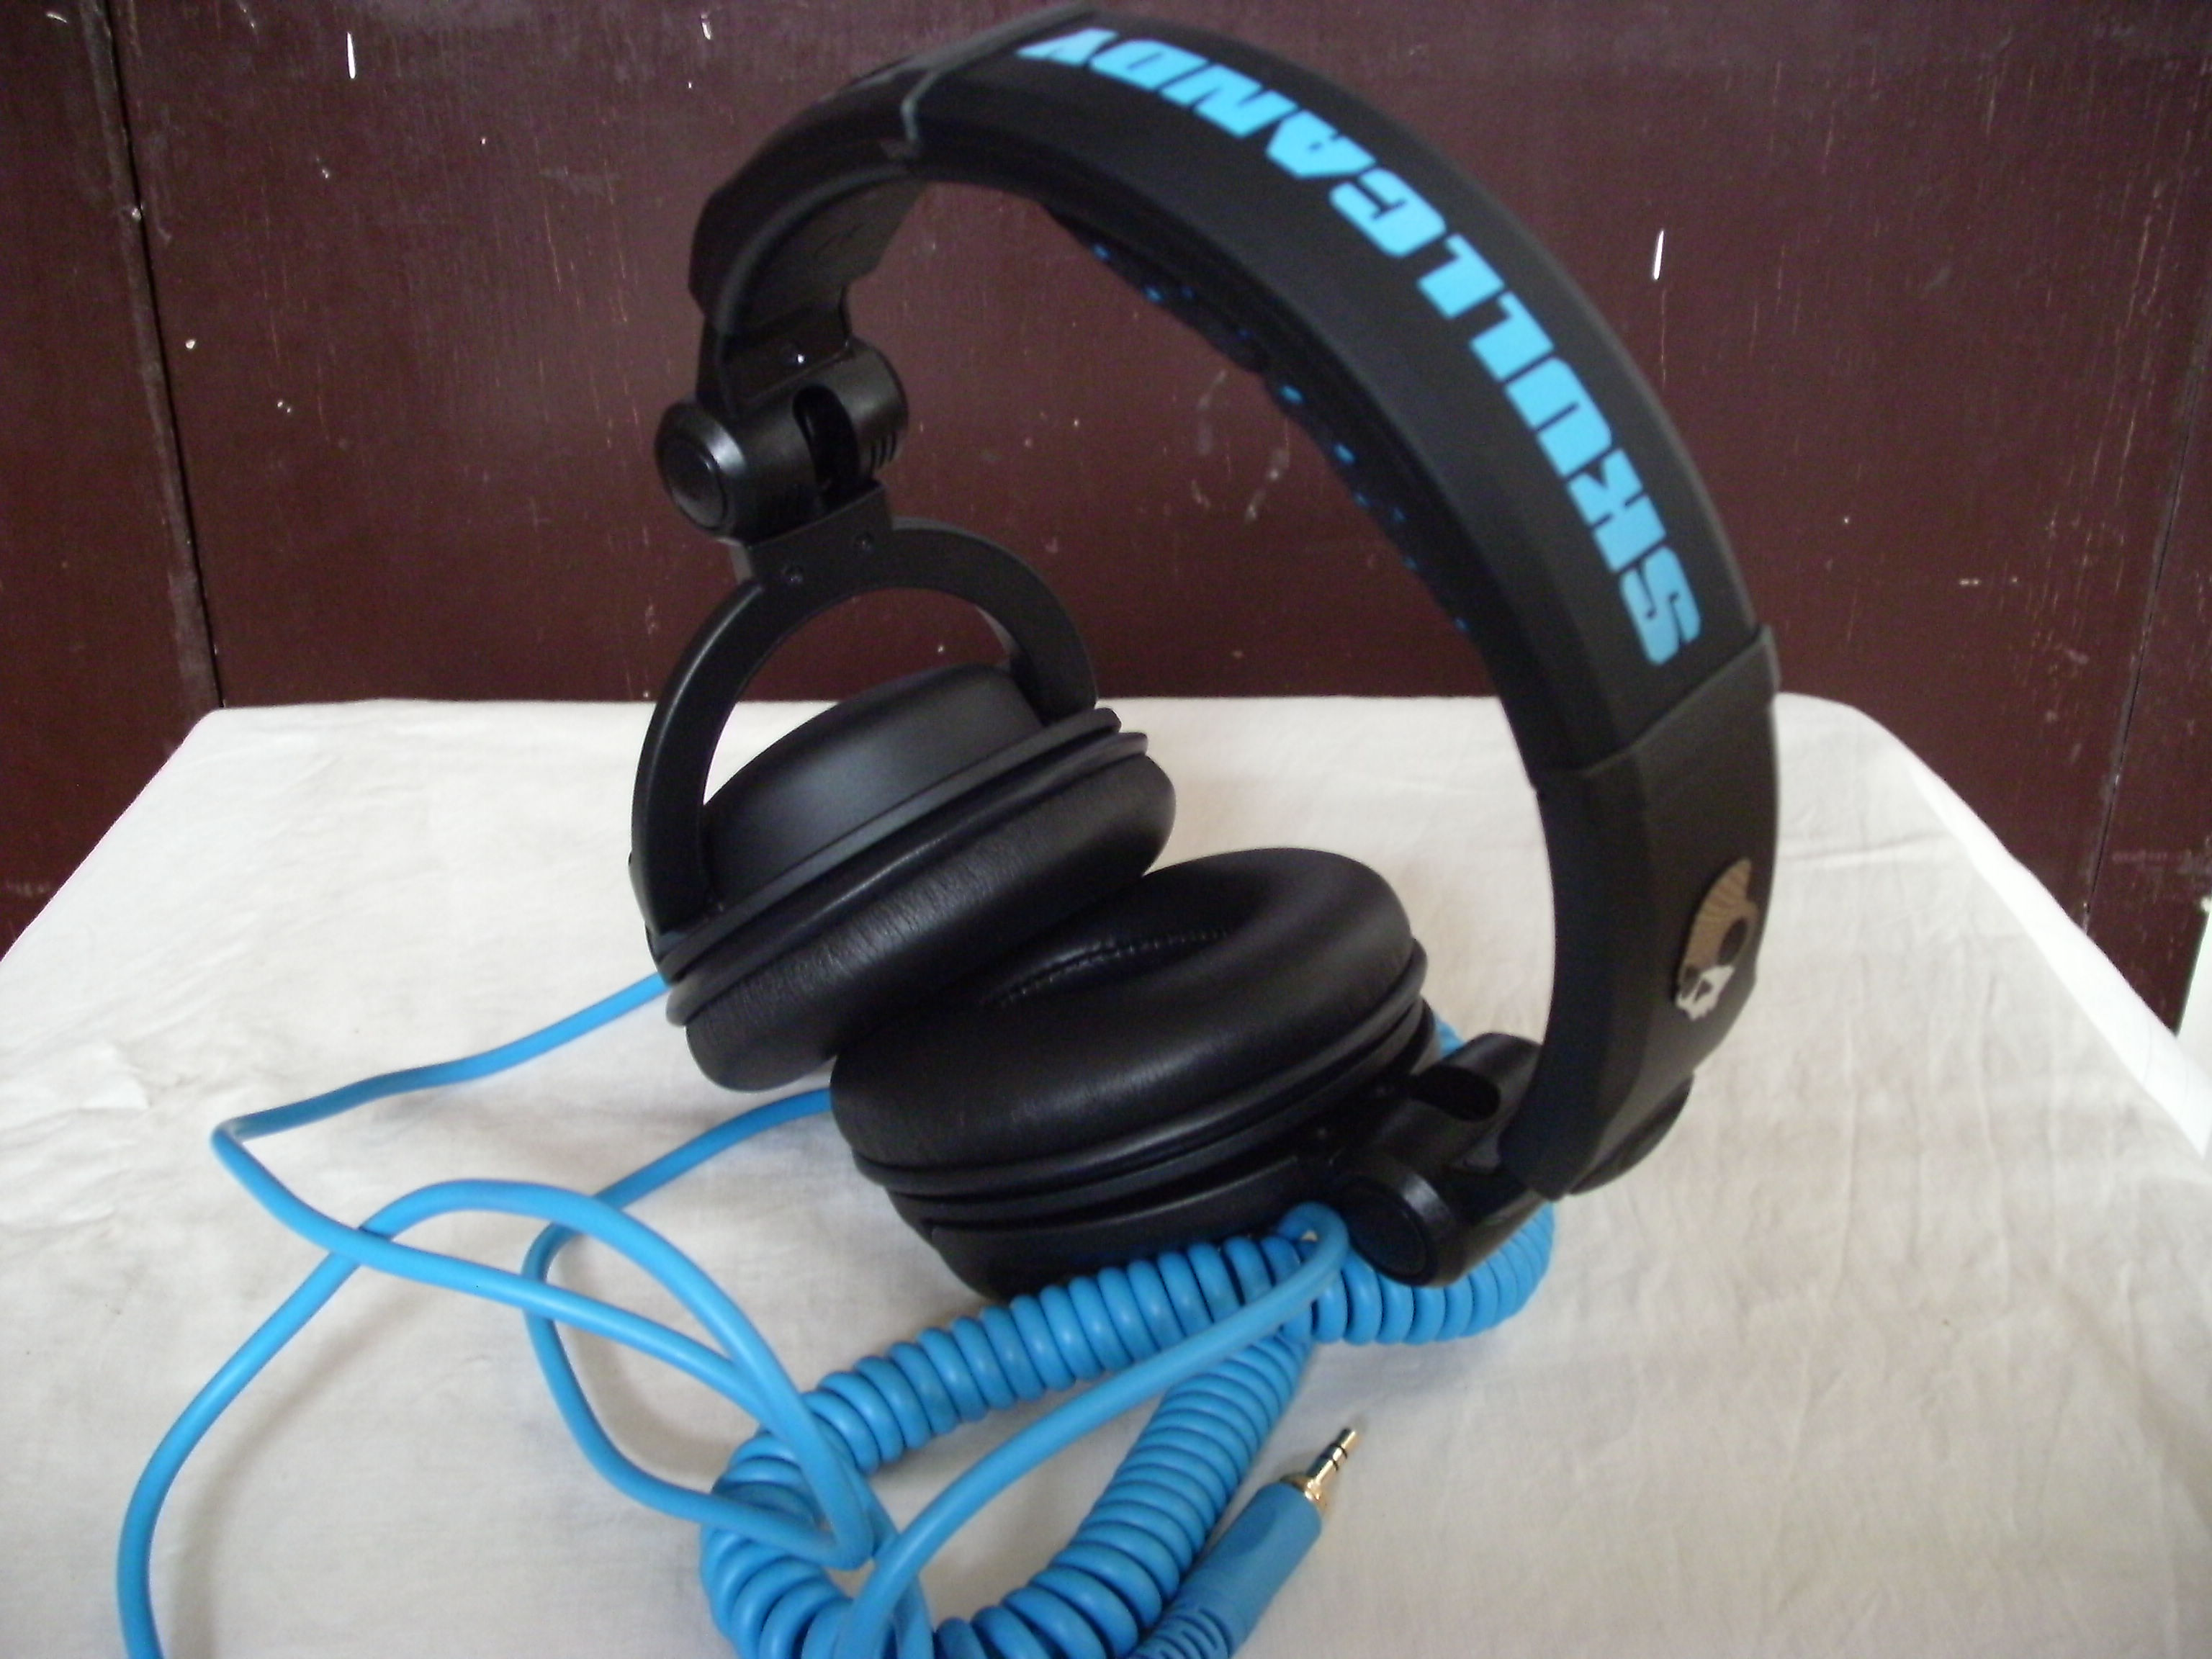 Headphone Review Skullcandy Sk Pro Scitech Gma News Online Jack Wiring Diagram Common In Other Low End Headphones The Instrumental Pathos Of Post Rock As Well Emo Bands Were Given Much Needed Articulation High Notes And